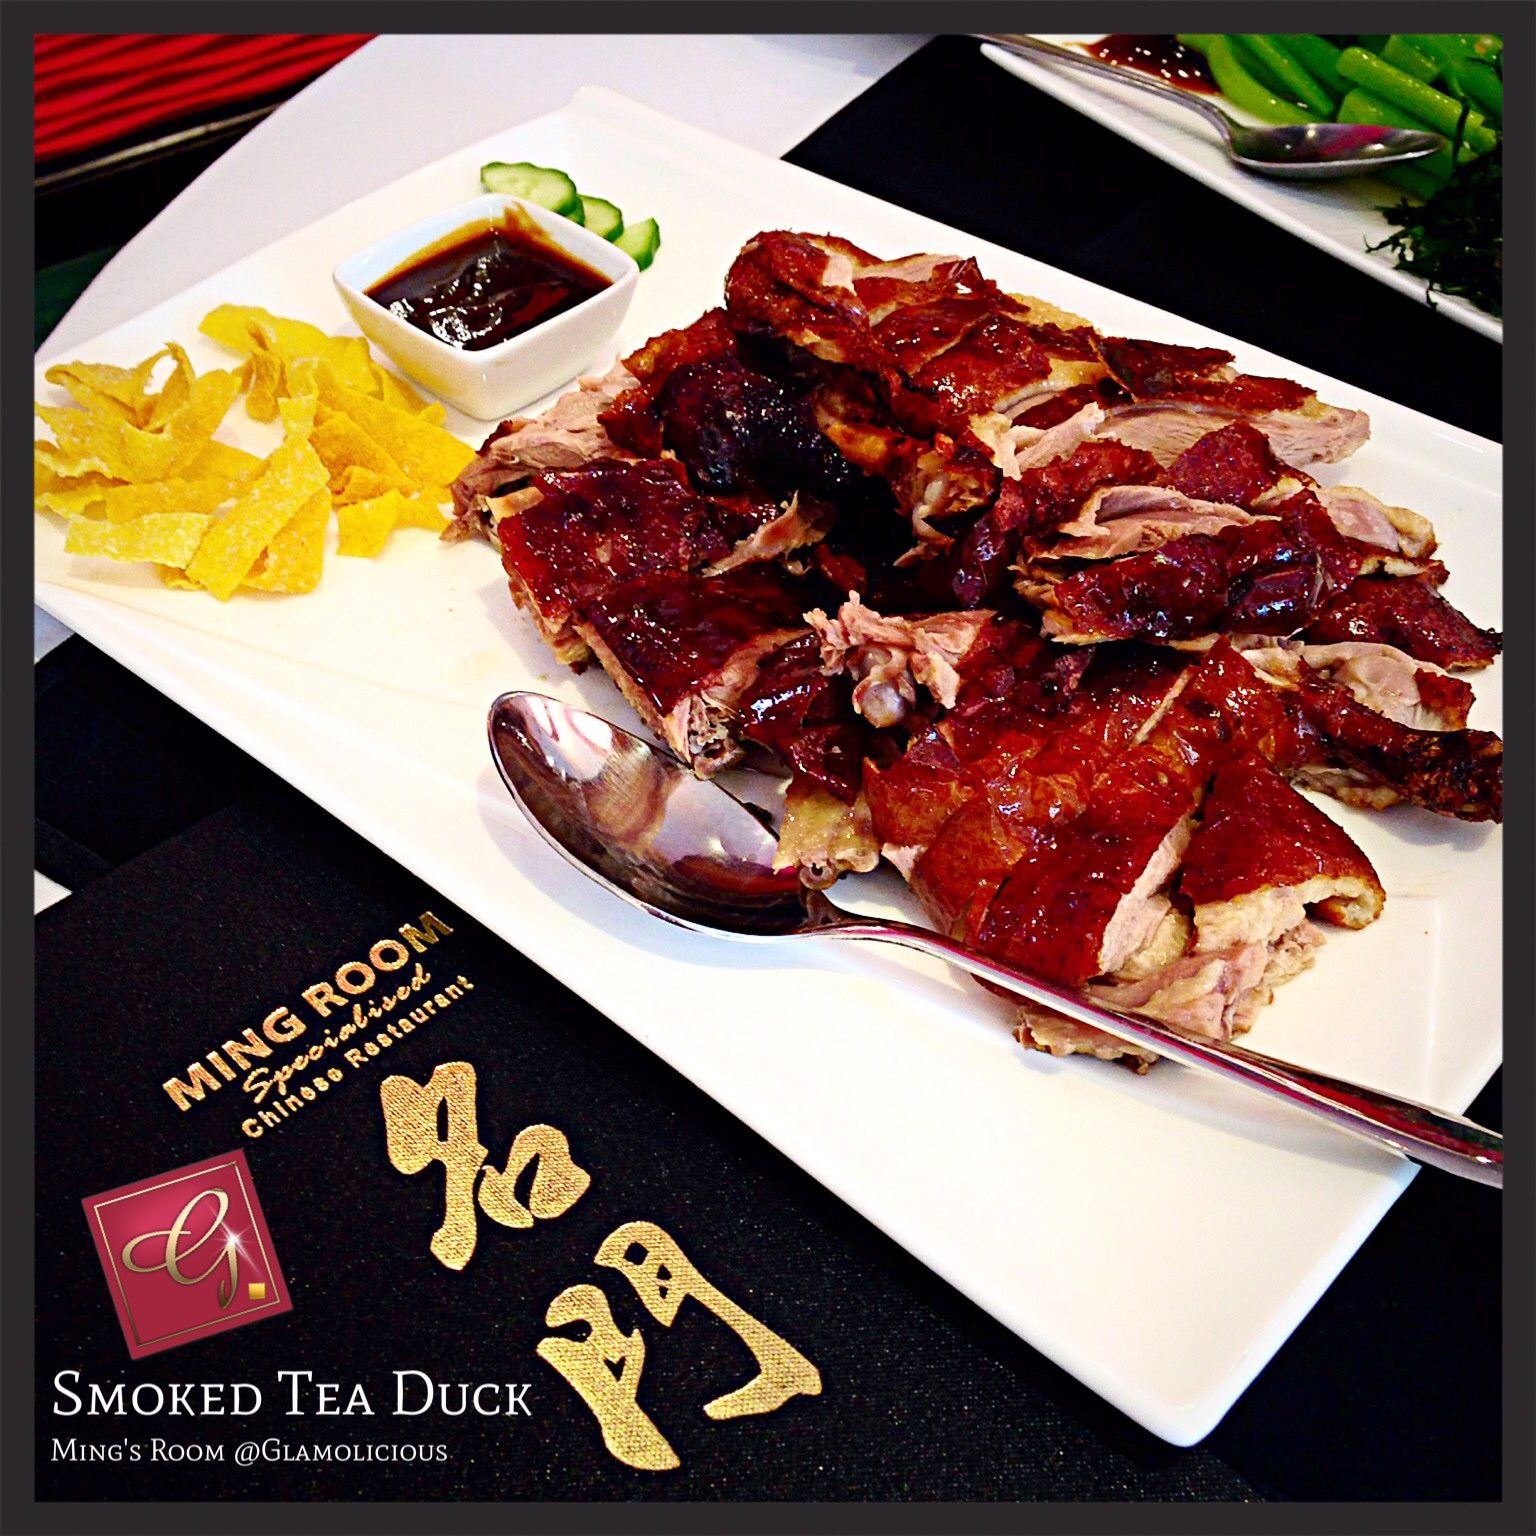 Smoked Tea Duck by Ming Room